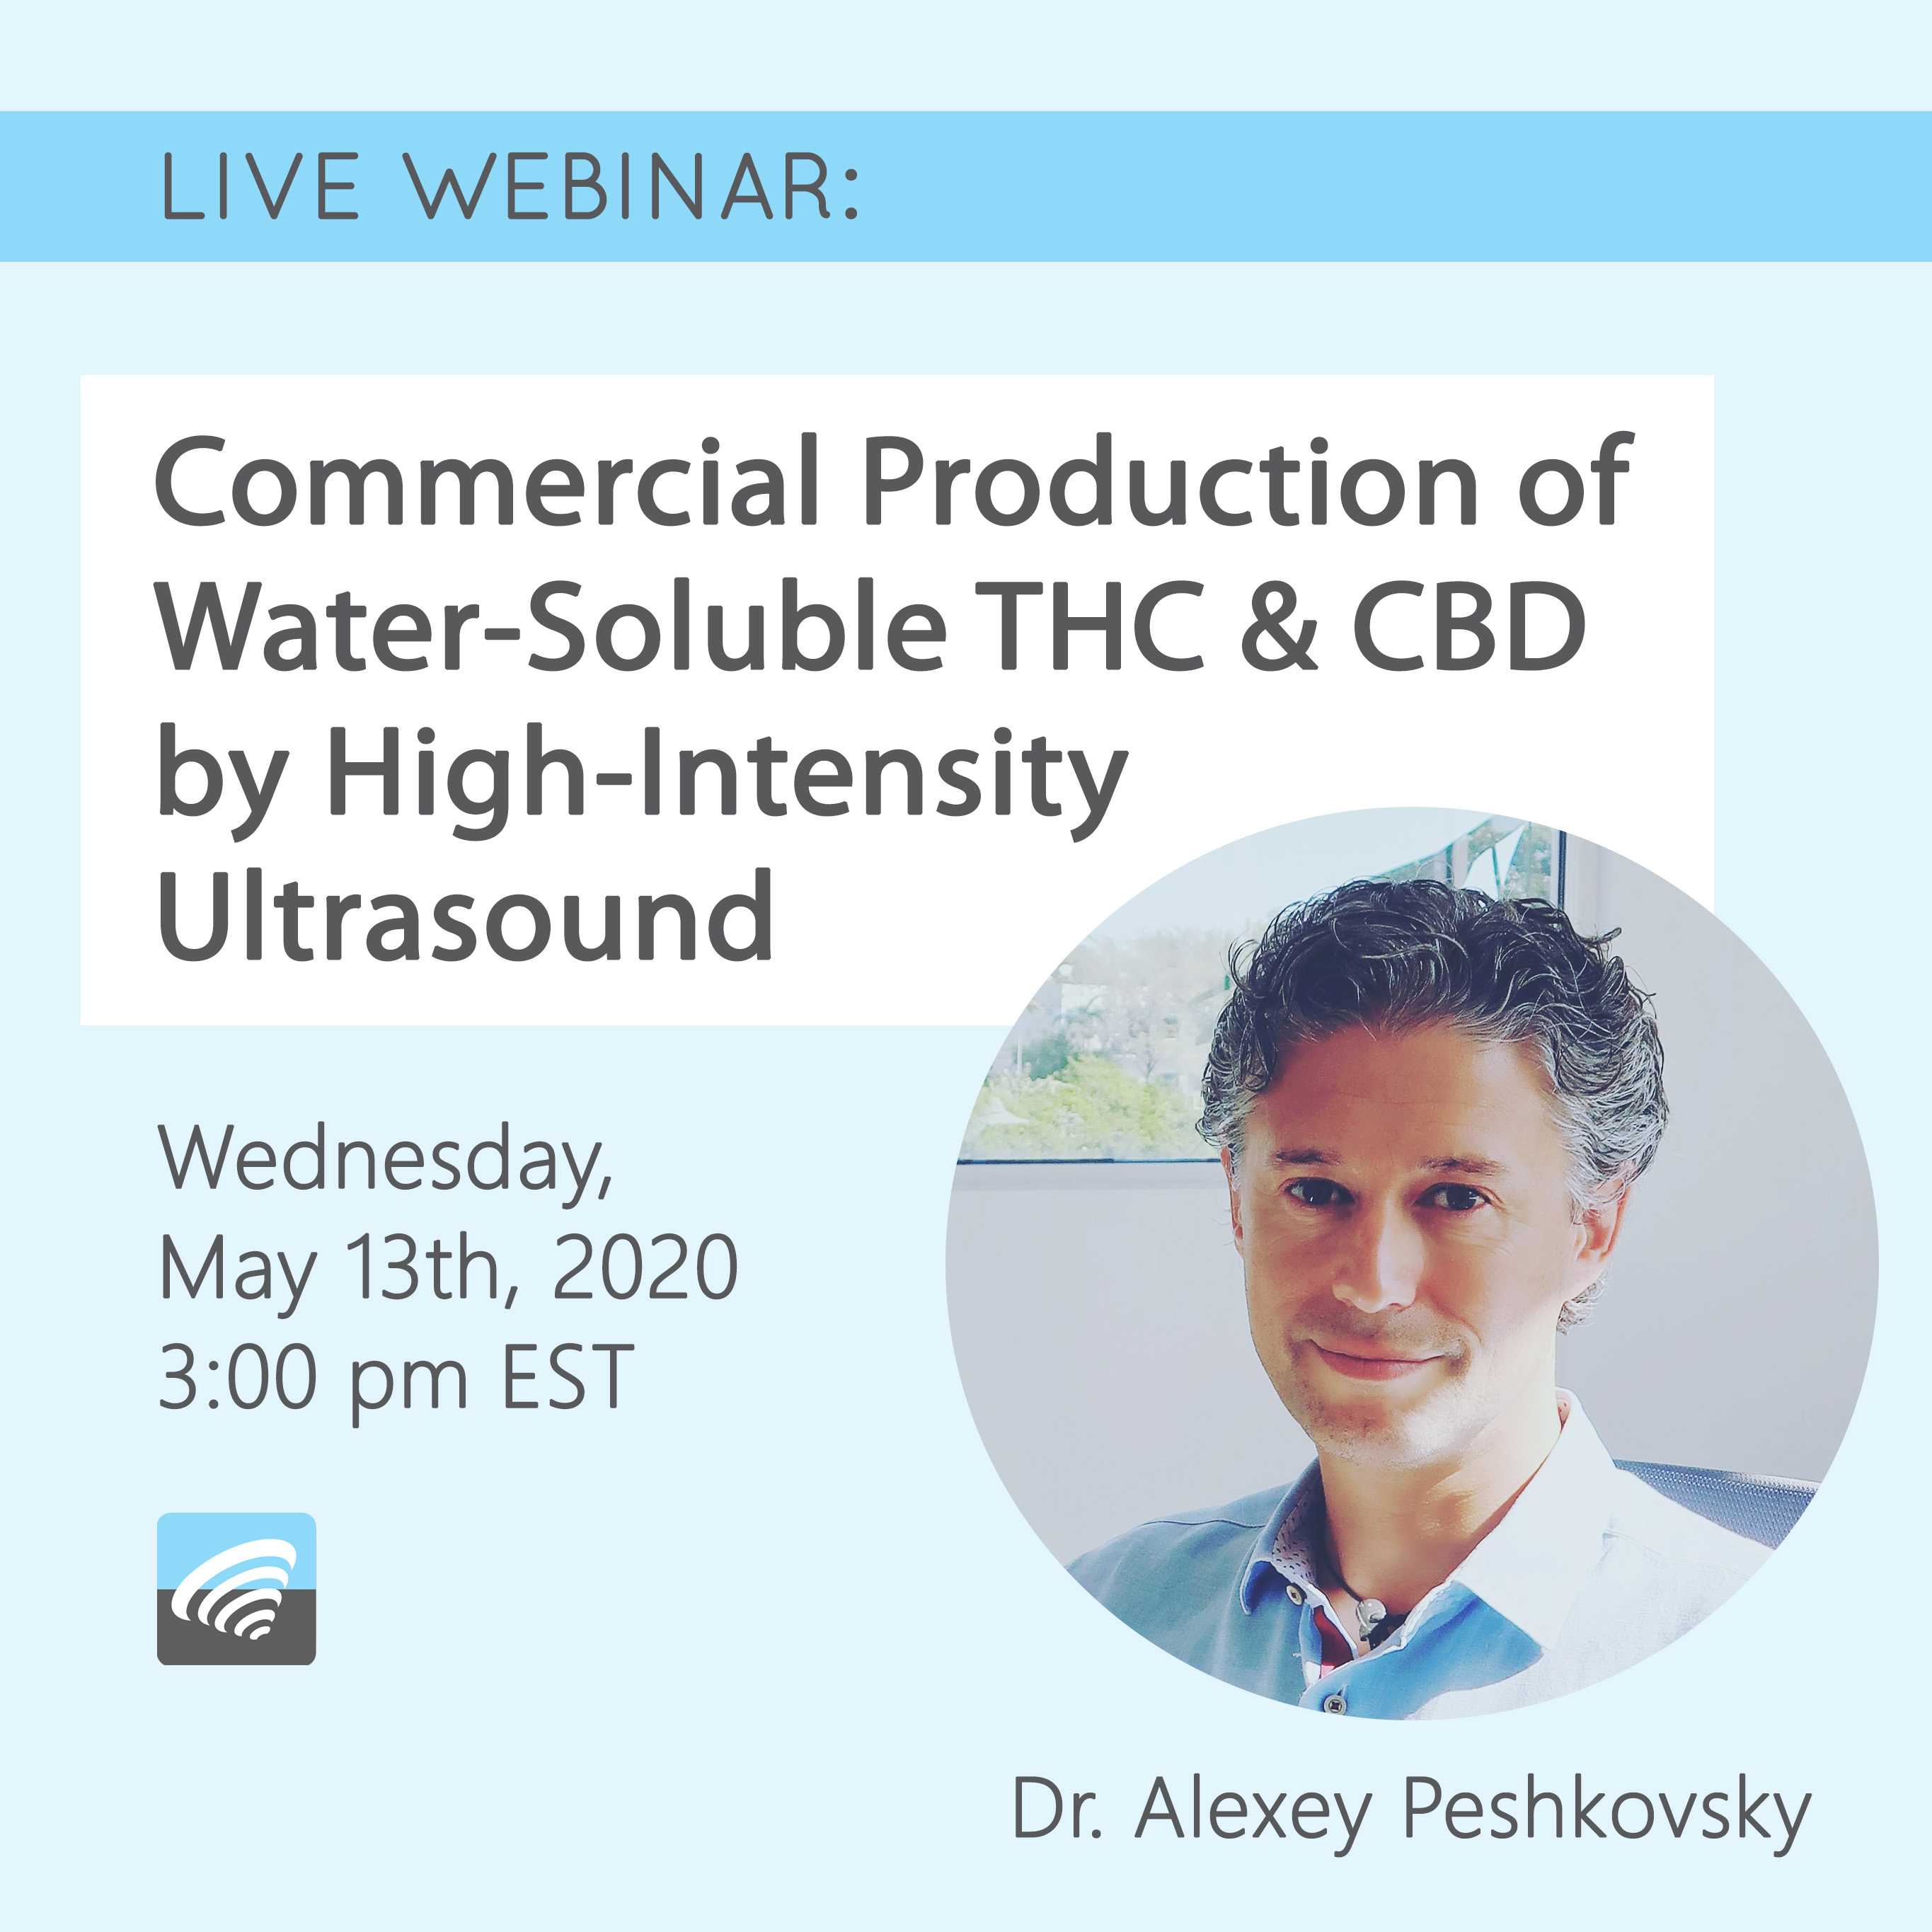 Webinar by Dr Alexey Peshkovsky - Commercial Production of Water-Soluble THC and CBD by High-Intensity Ultrasound, 05-13-20